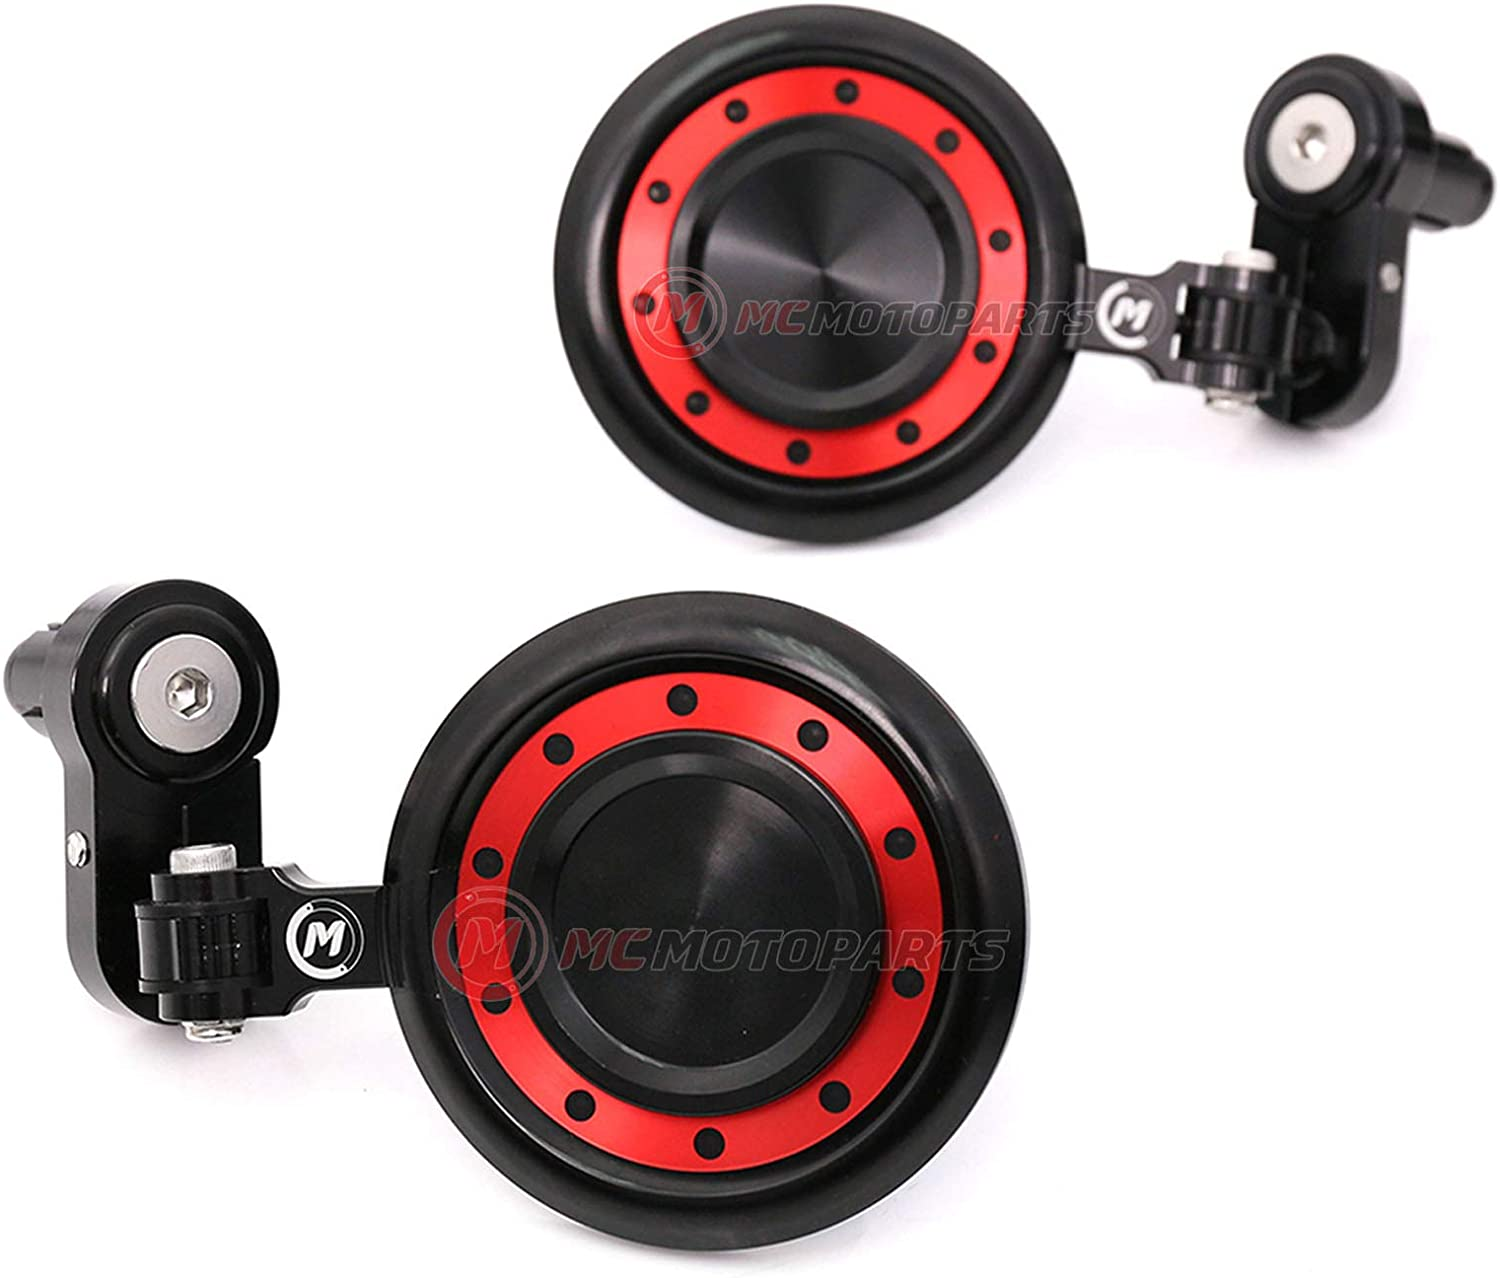 MC MOTOPARTS Memphis Mall Red REACTOR Bar End Mirrors with Z800 Z1 Cash special price Compatible